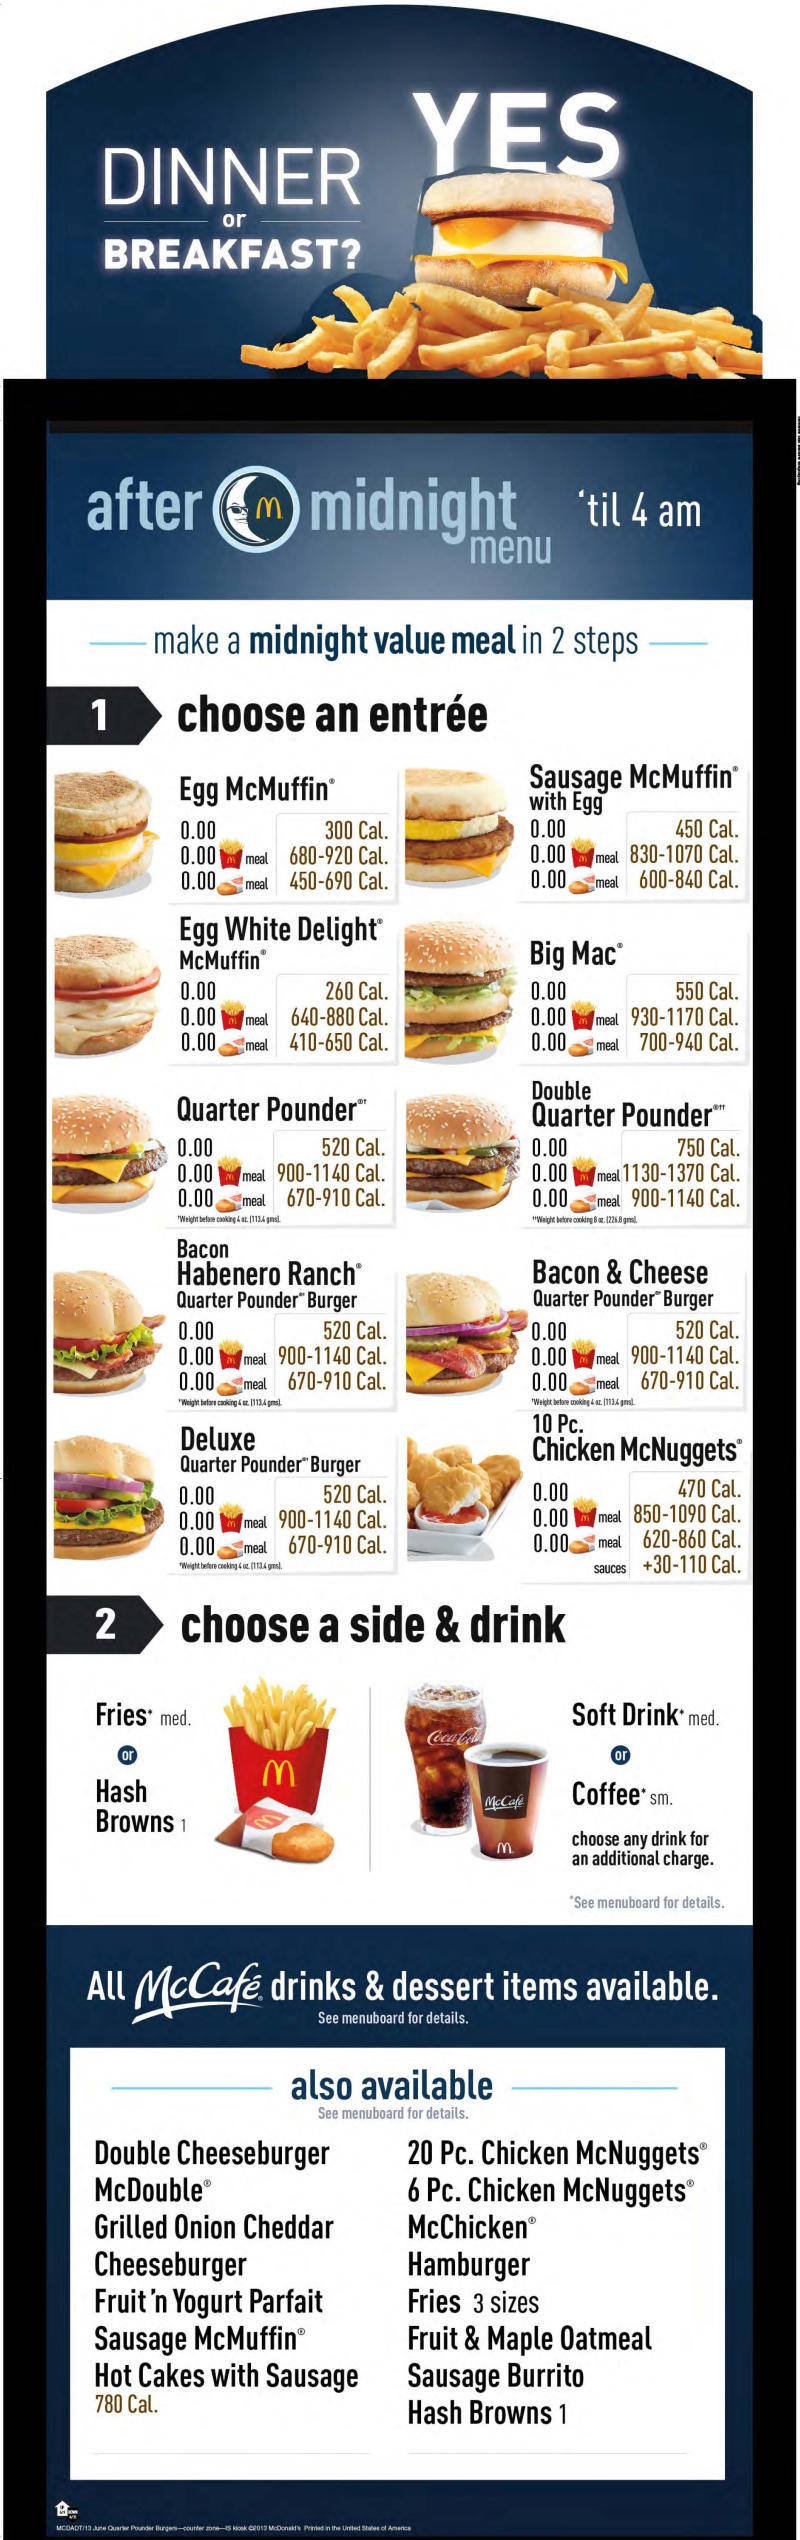 McDonald's courts night owls with breakfast items